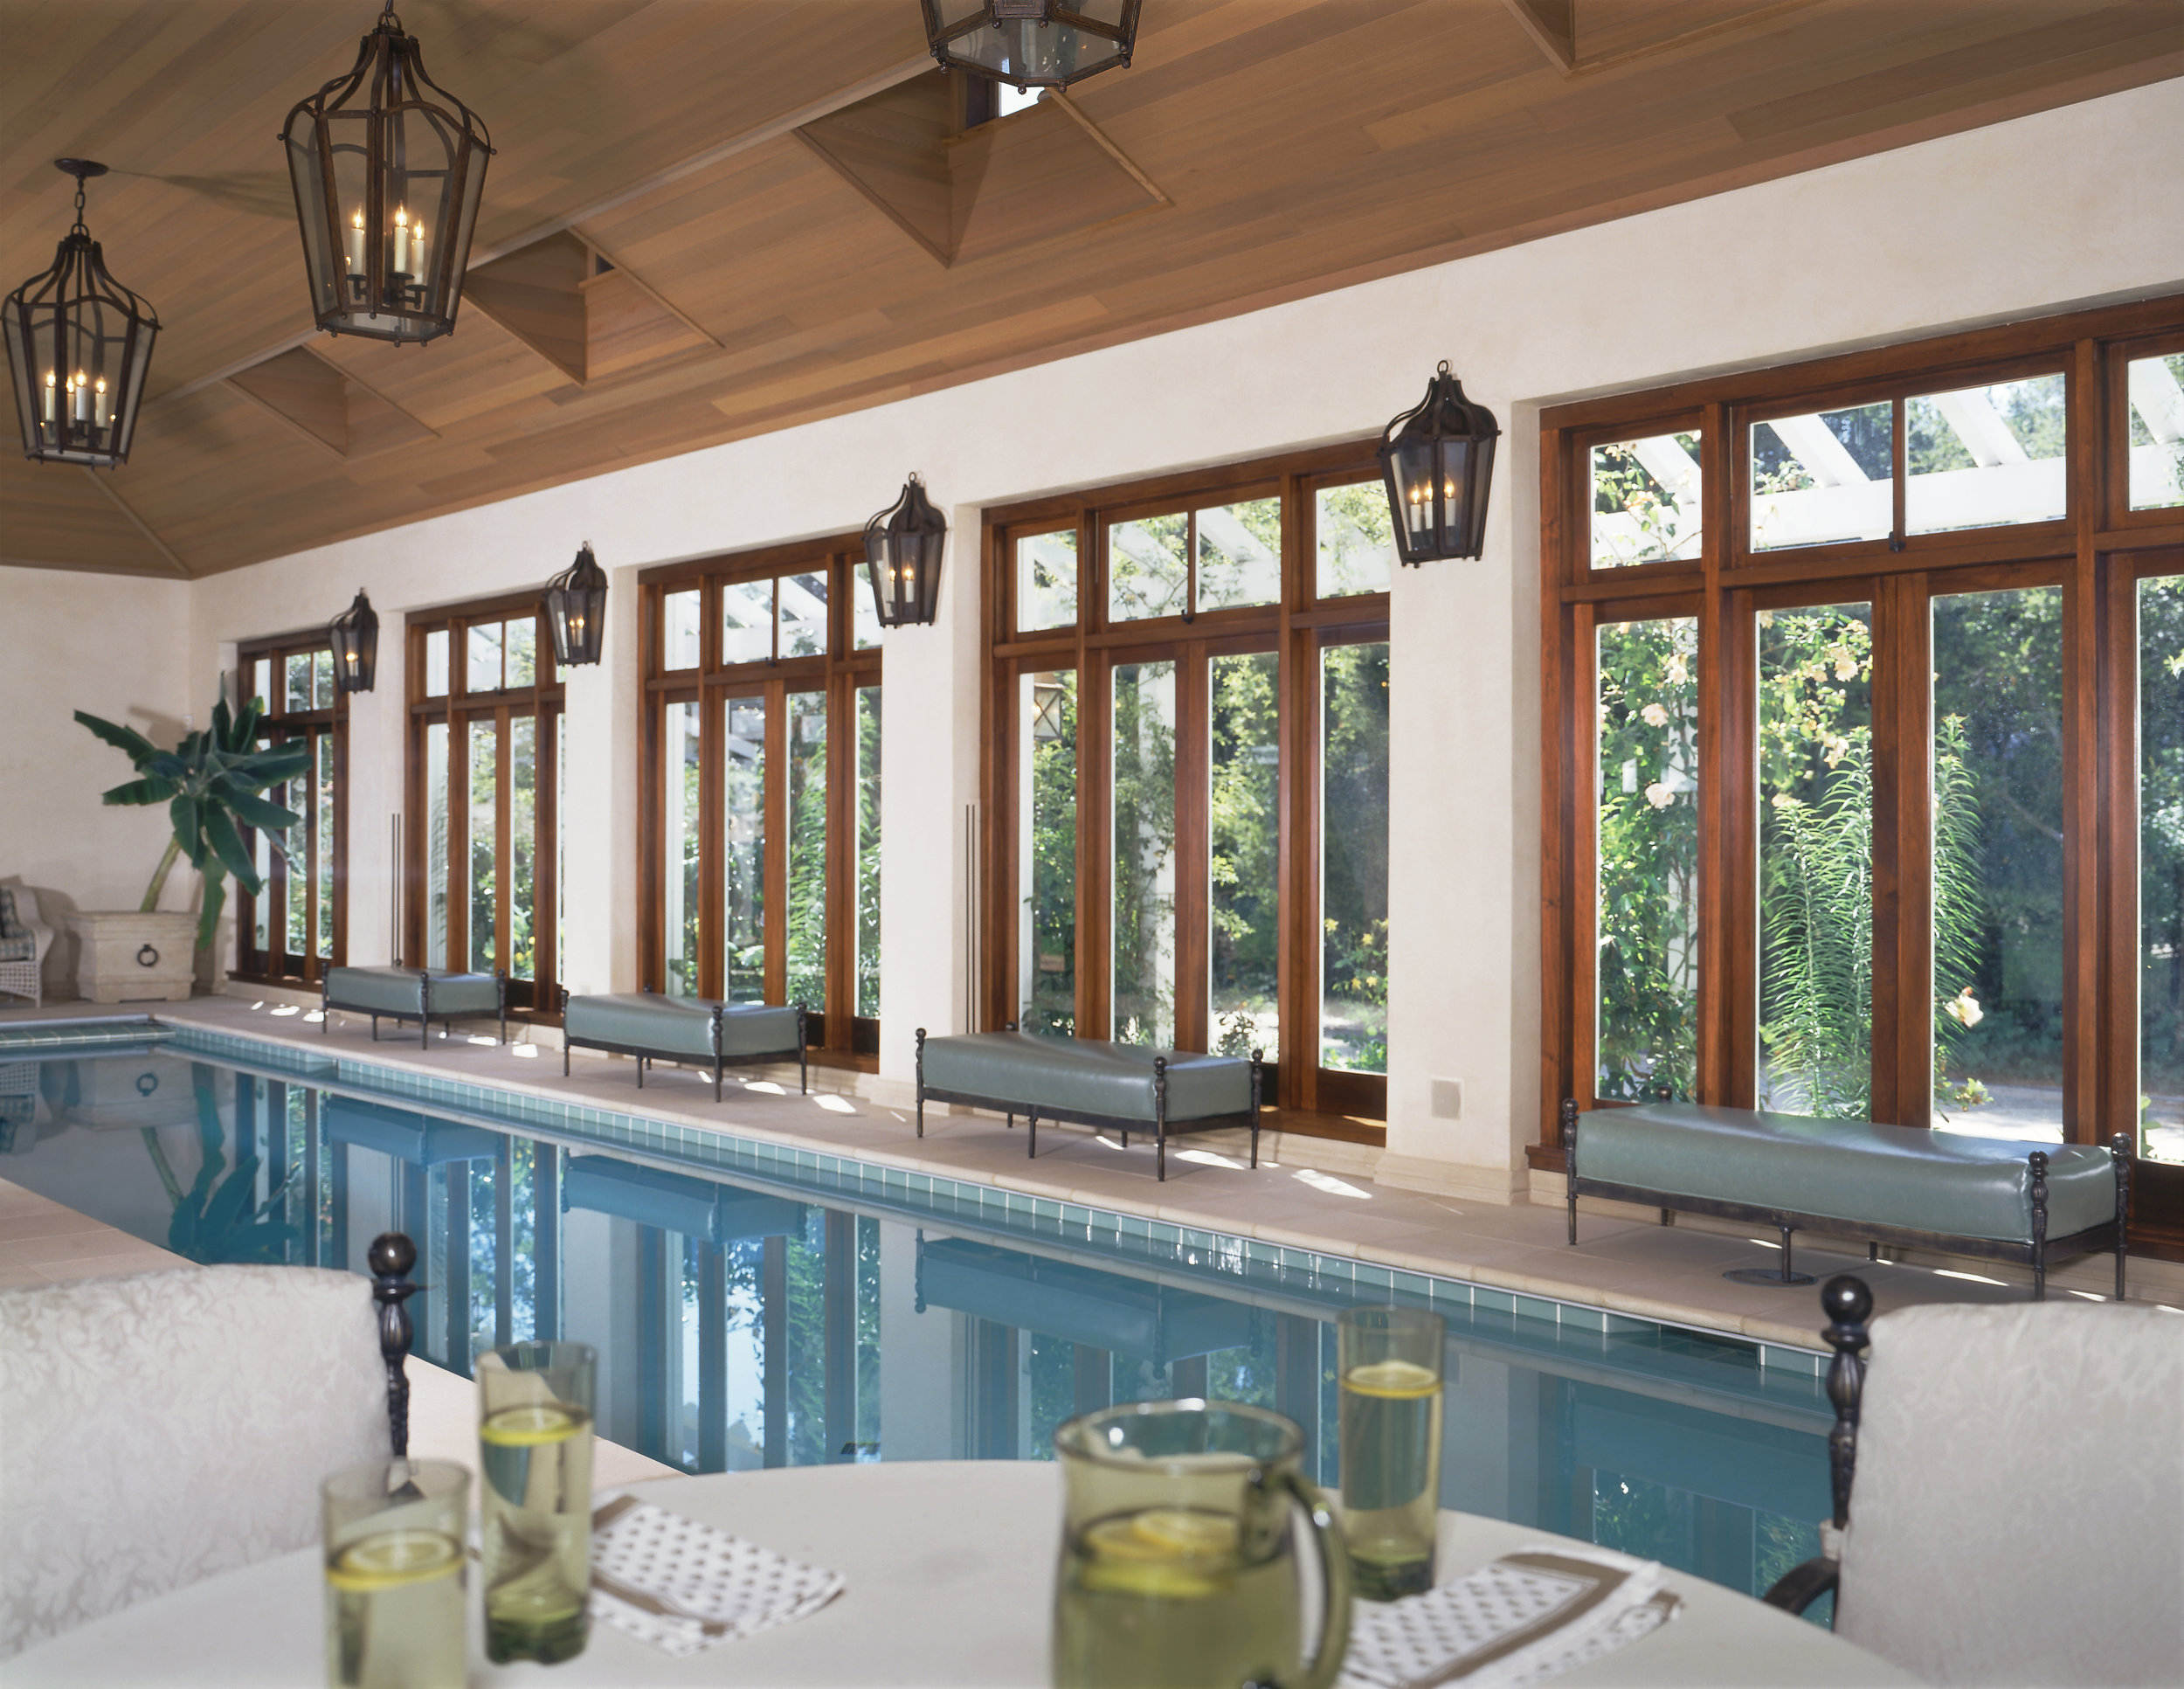 PROULX GUEST HOUSE INDOOR POOL.jpg